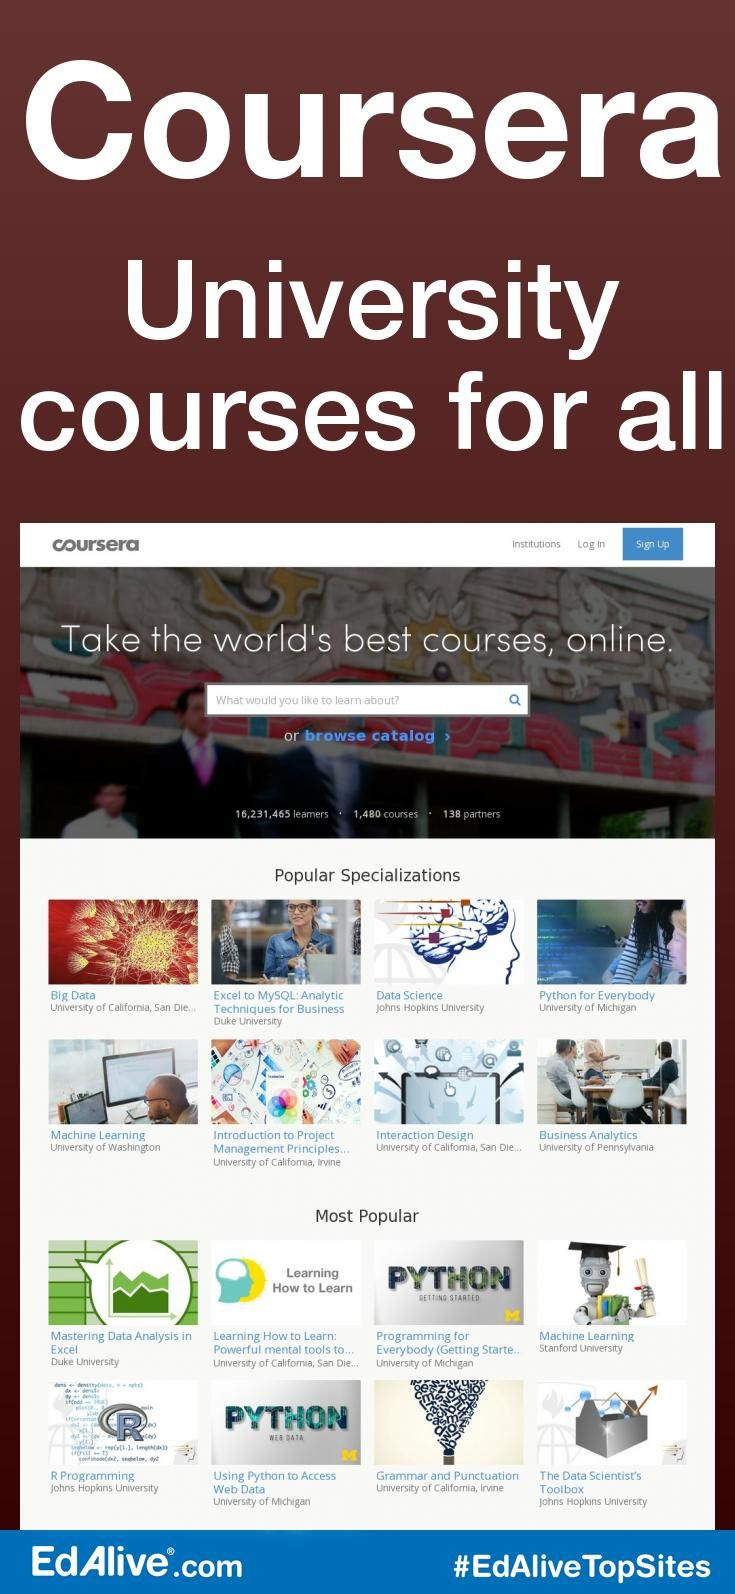 University courses for all | Offers courses from top universities for free. Coursera offers massive open online courses (MOOCs). Coursera works with top universities and organizations to make some of their courses available online, and offers courses in physics, engineering, humanities, medicine, biology, social sciences, mathematics, business, computer science, digital marketing, data science and other subjects. #OnlineLearning&eLearning #EdAliveTopSites